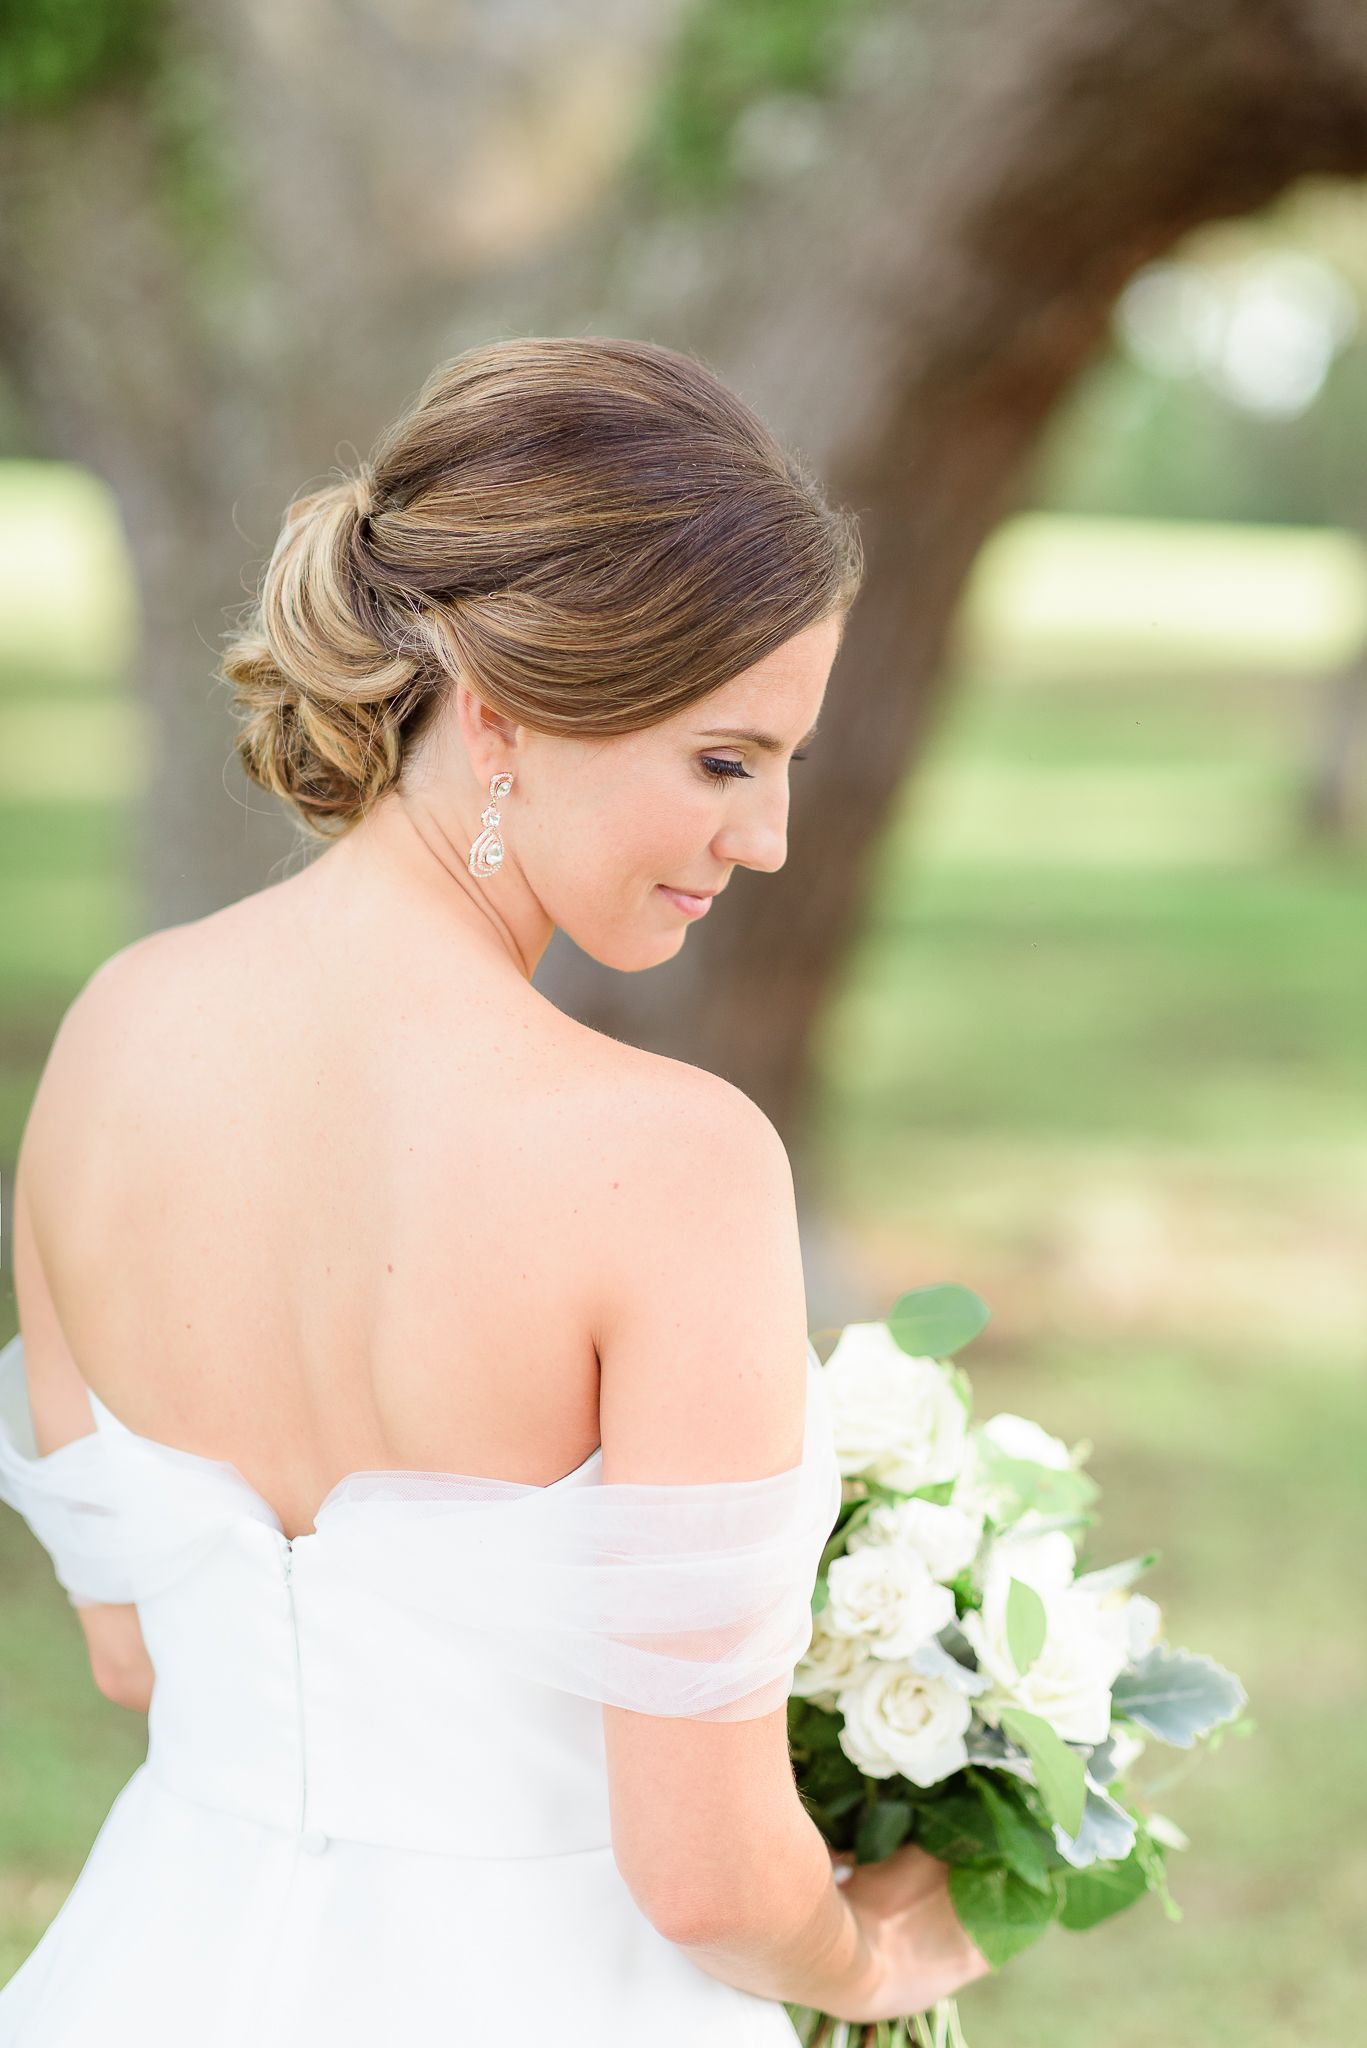 bridal portraits, bride photos, wedding day, wedding ideas, wedding